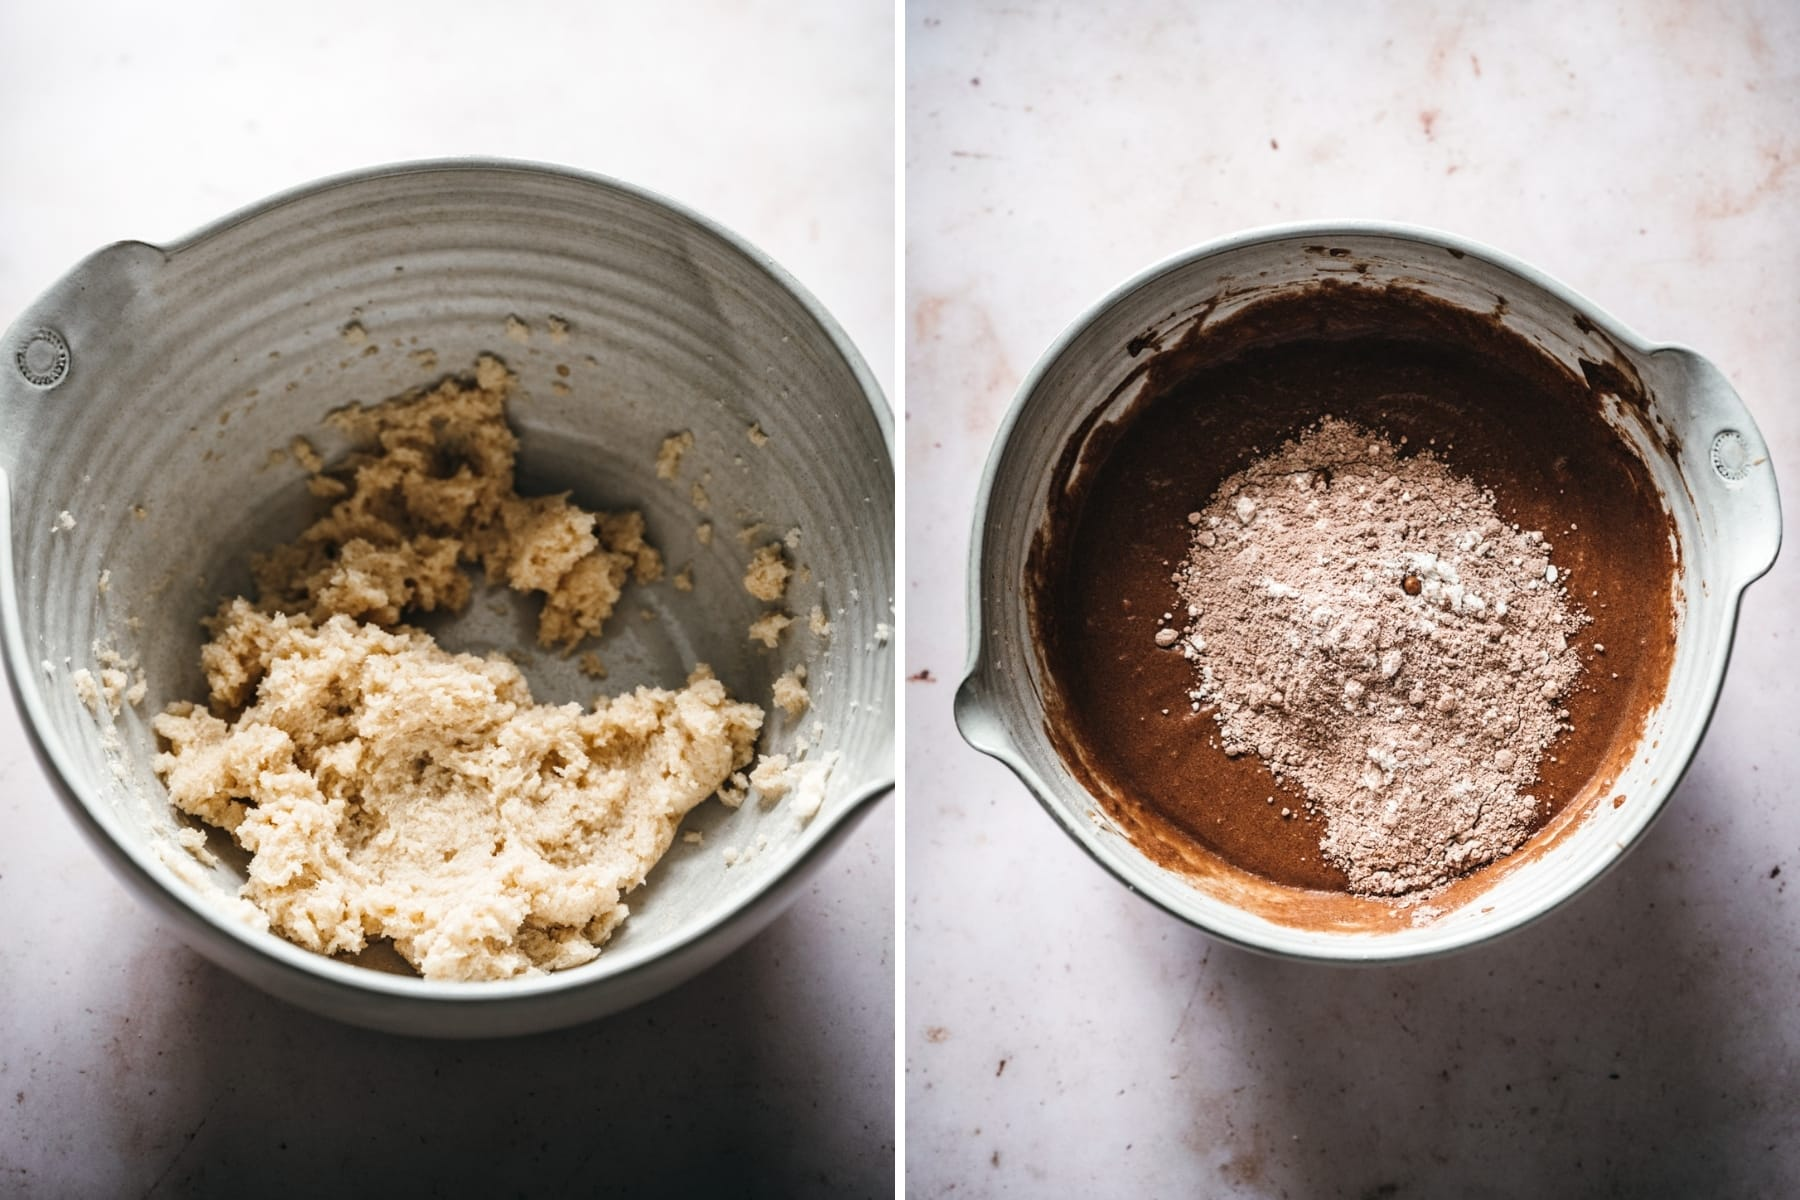 on the left: creamed vegan butter and sugar in mixing bowl. On the right, chocolate cupcake batter in bowl.